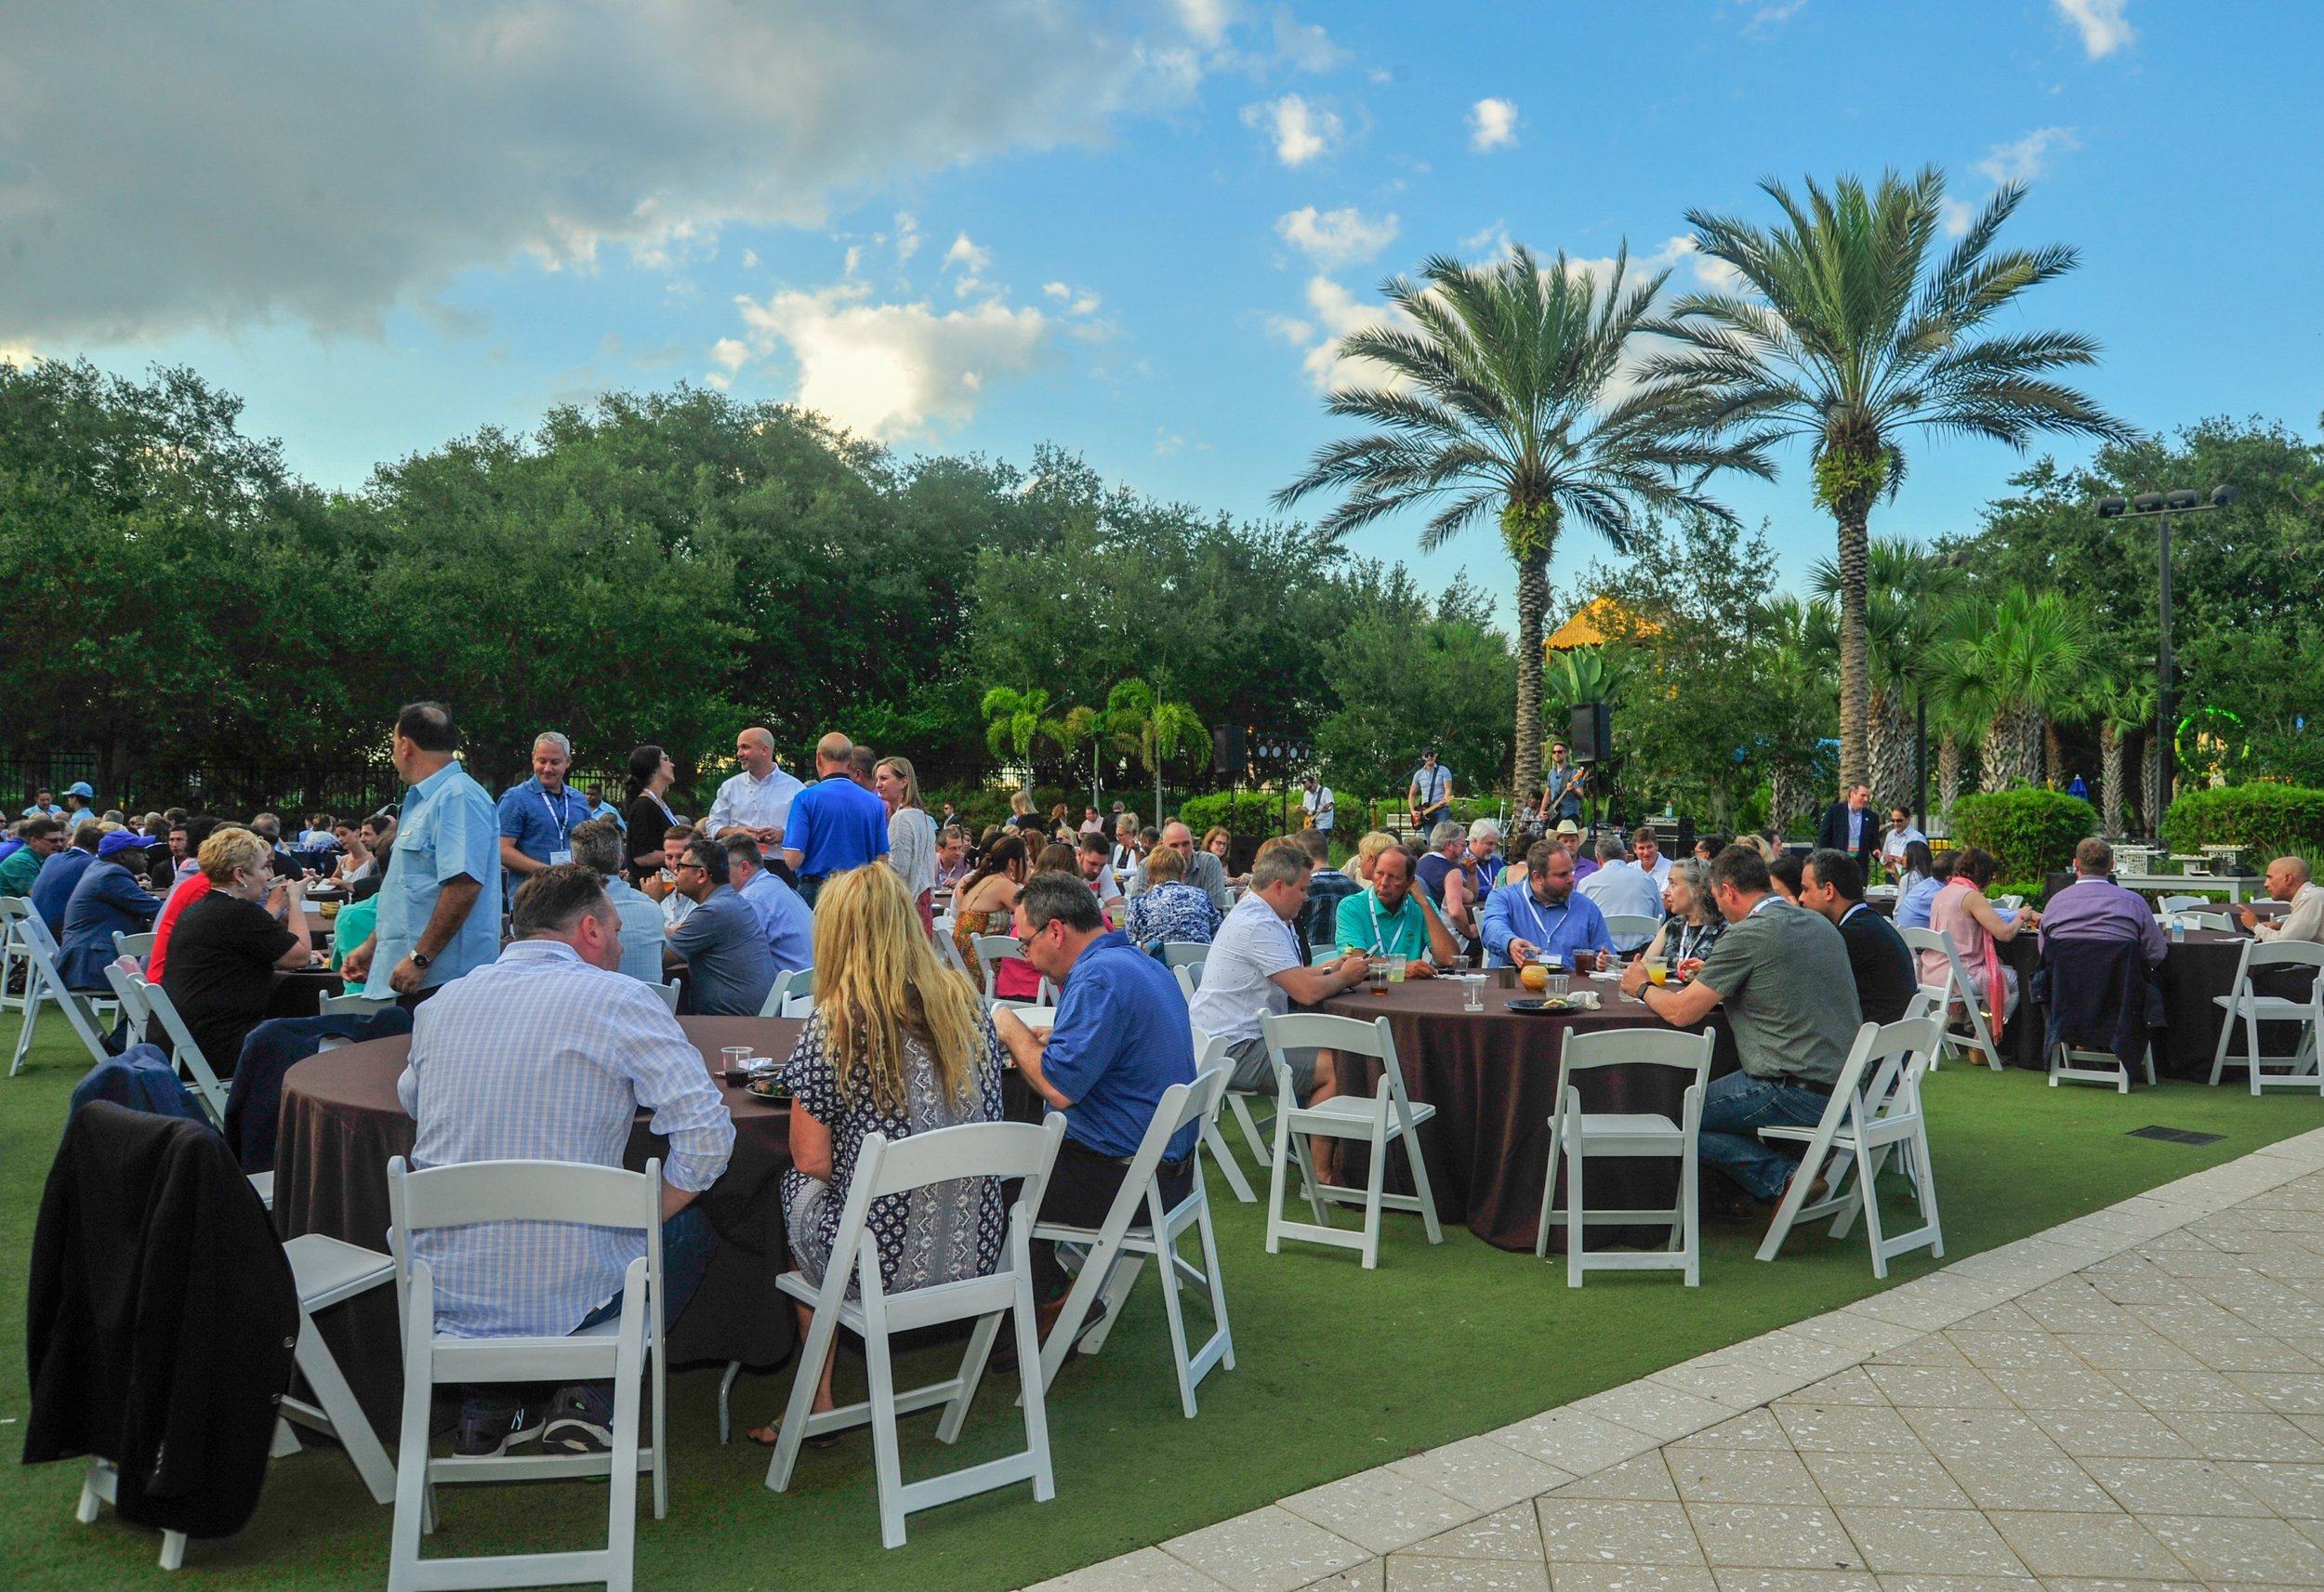 Hundreds of SIM Connect Live attendees enjoyed networking, dinner and entertainment during a pleasant Orlando evening on May 16, 2019.